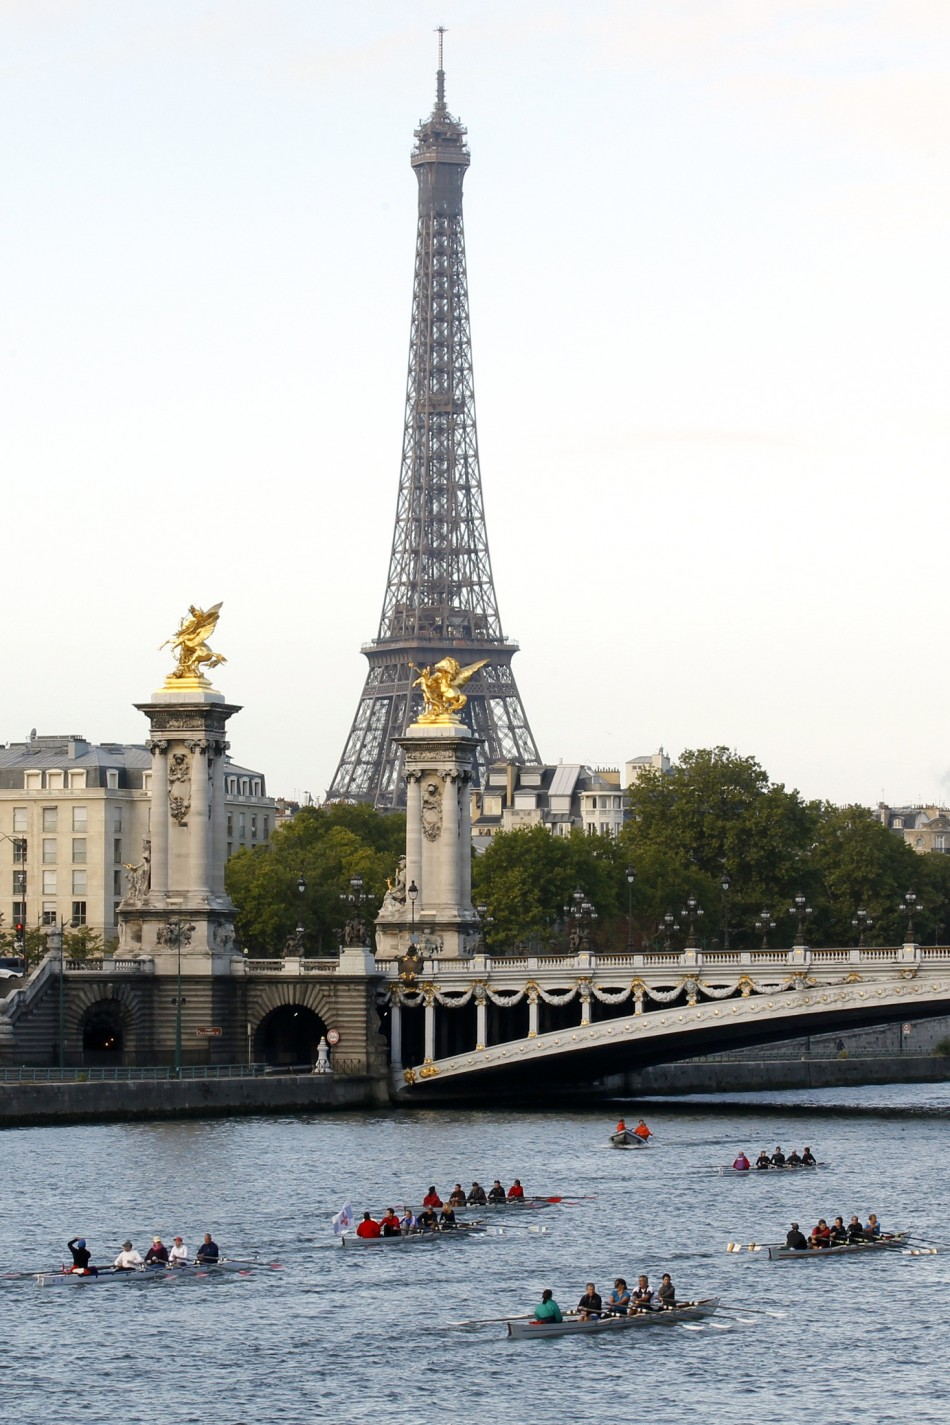 8  PARIS - Paris continues to lead the world in quality of infrastructure, transportation, lifestyle assets and economic reputation, but it falls behind in sustainability and ease of doing business.